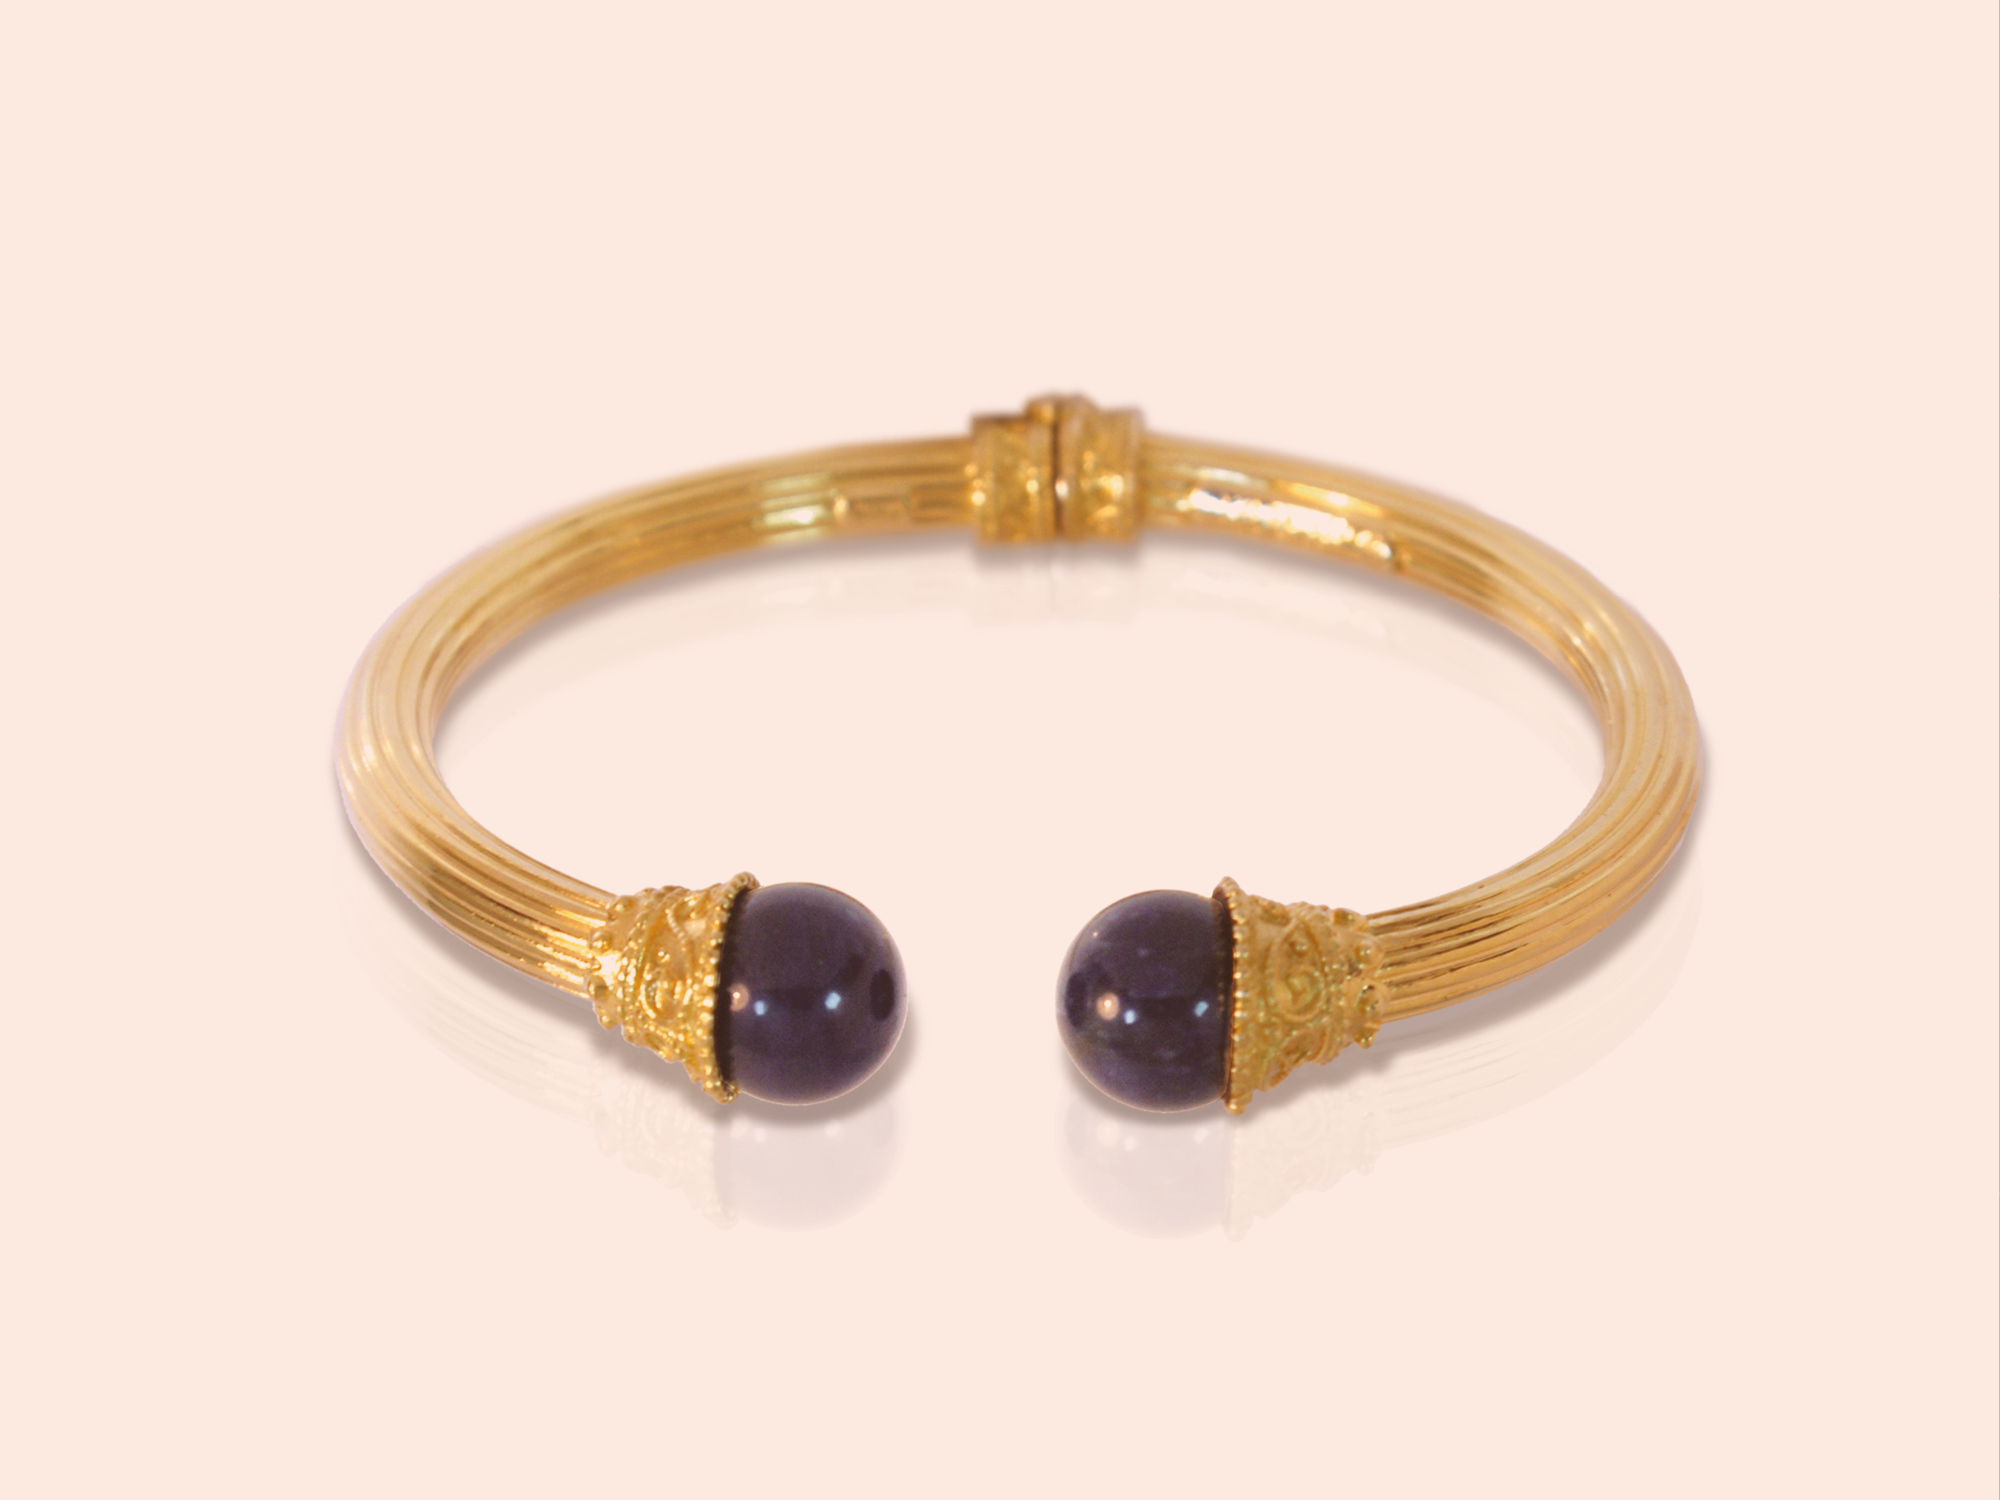 Lalaounis Classical and Hellenistic collection bracelet in 18K gold and semi precious stones